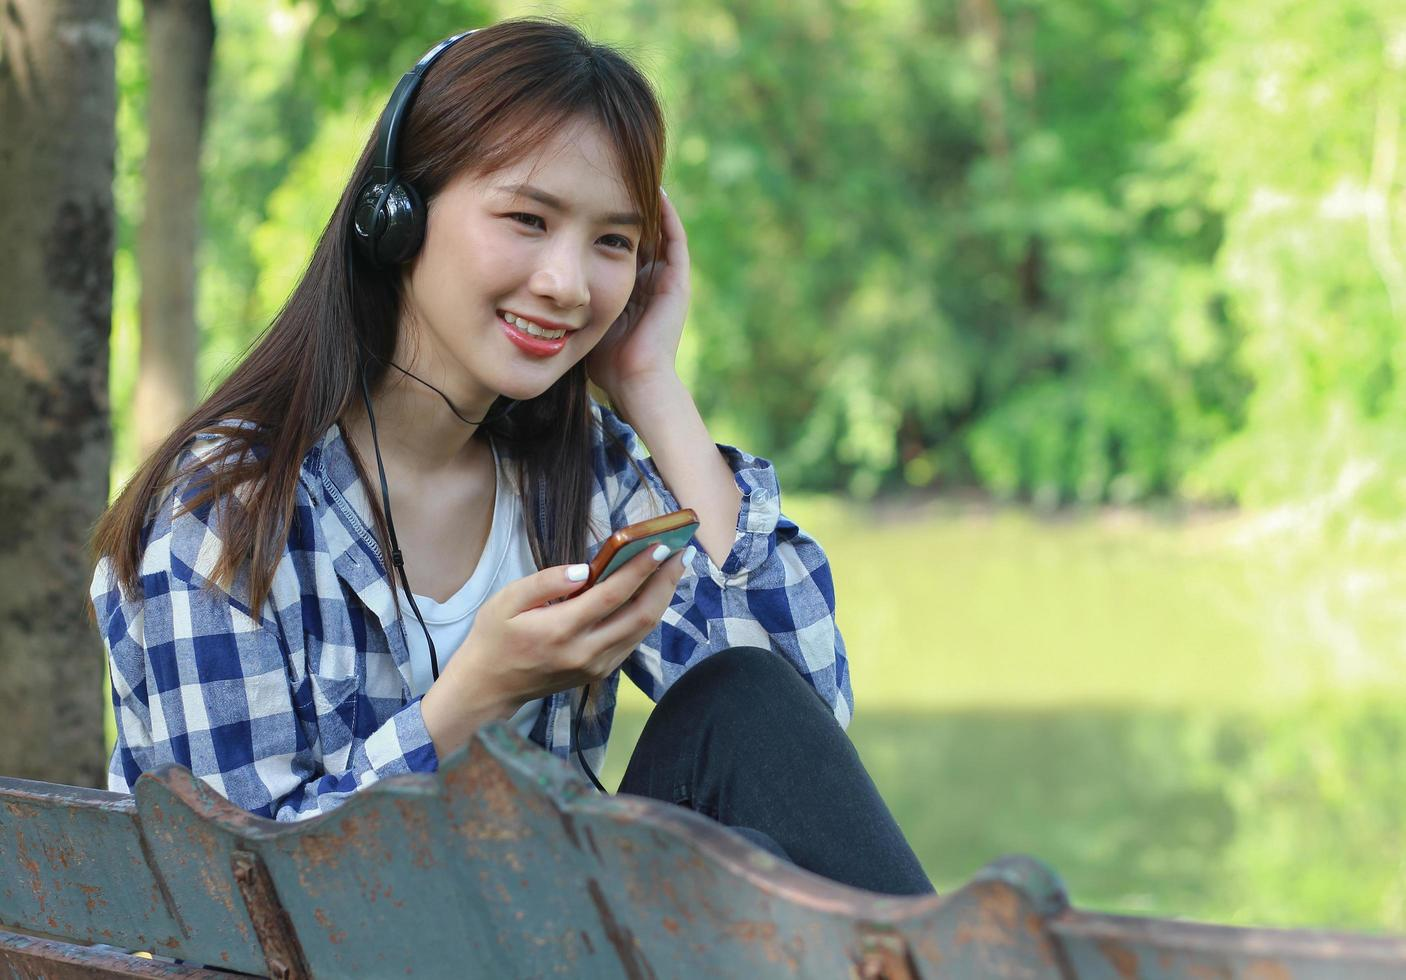 Woman listening to music on smartphone photo